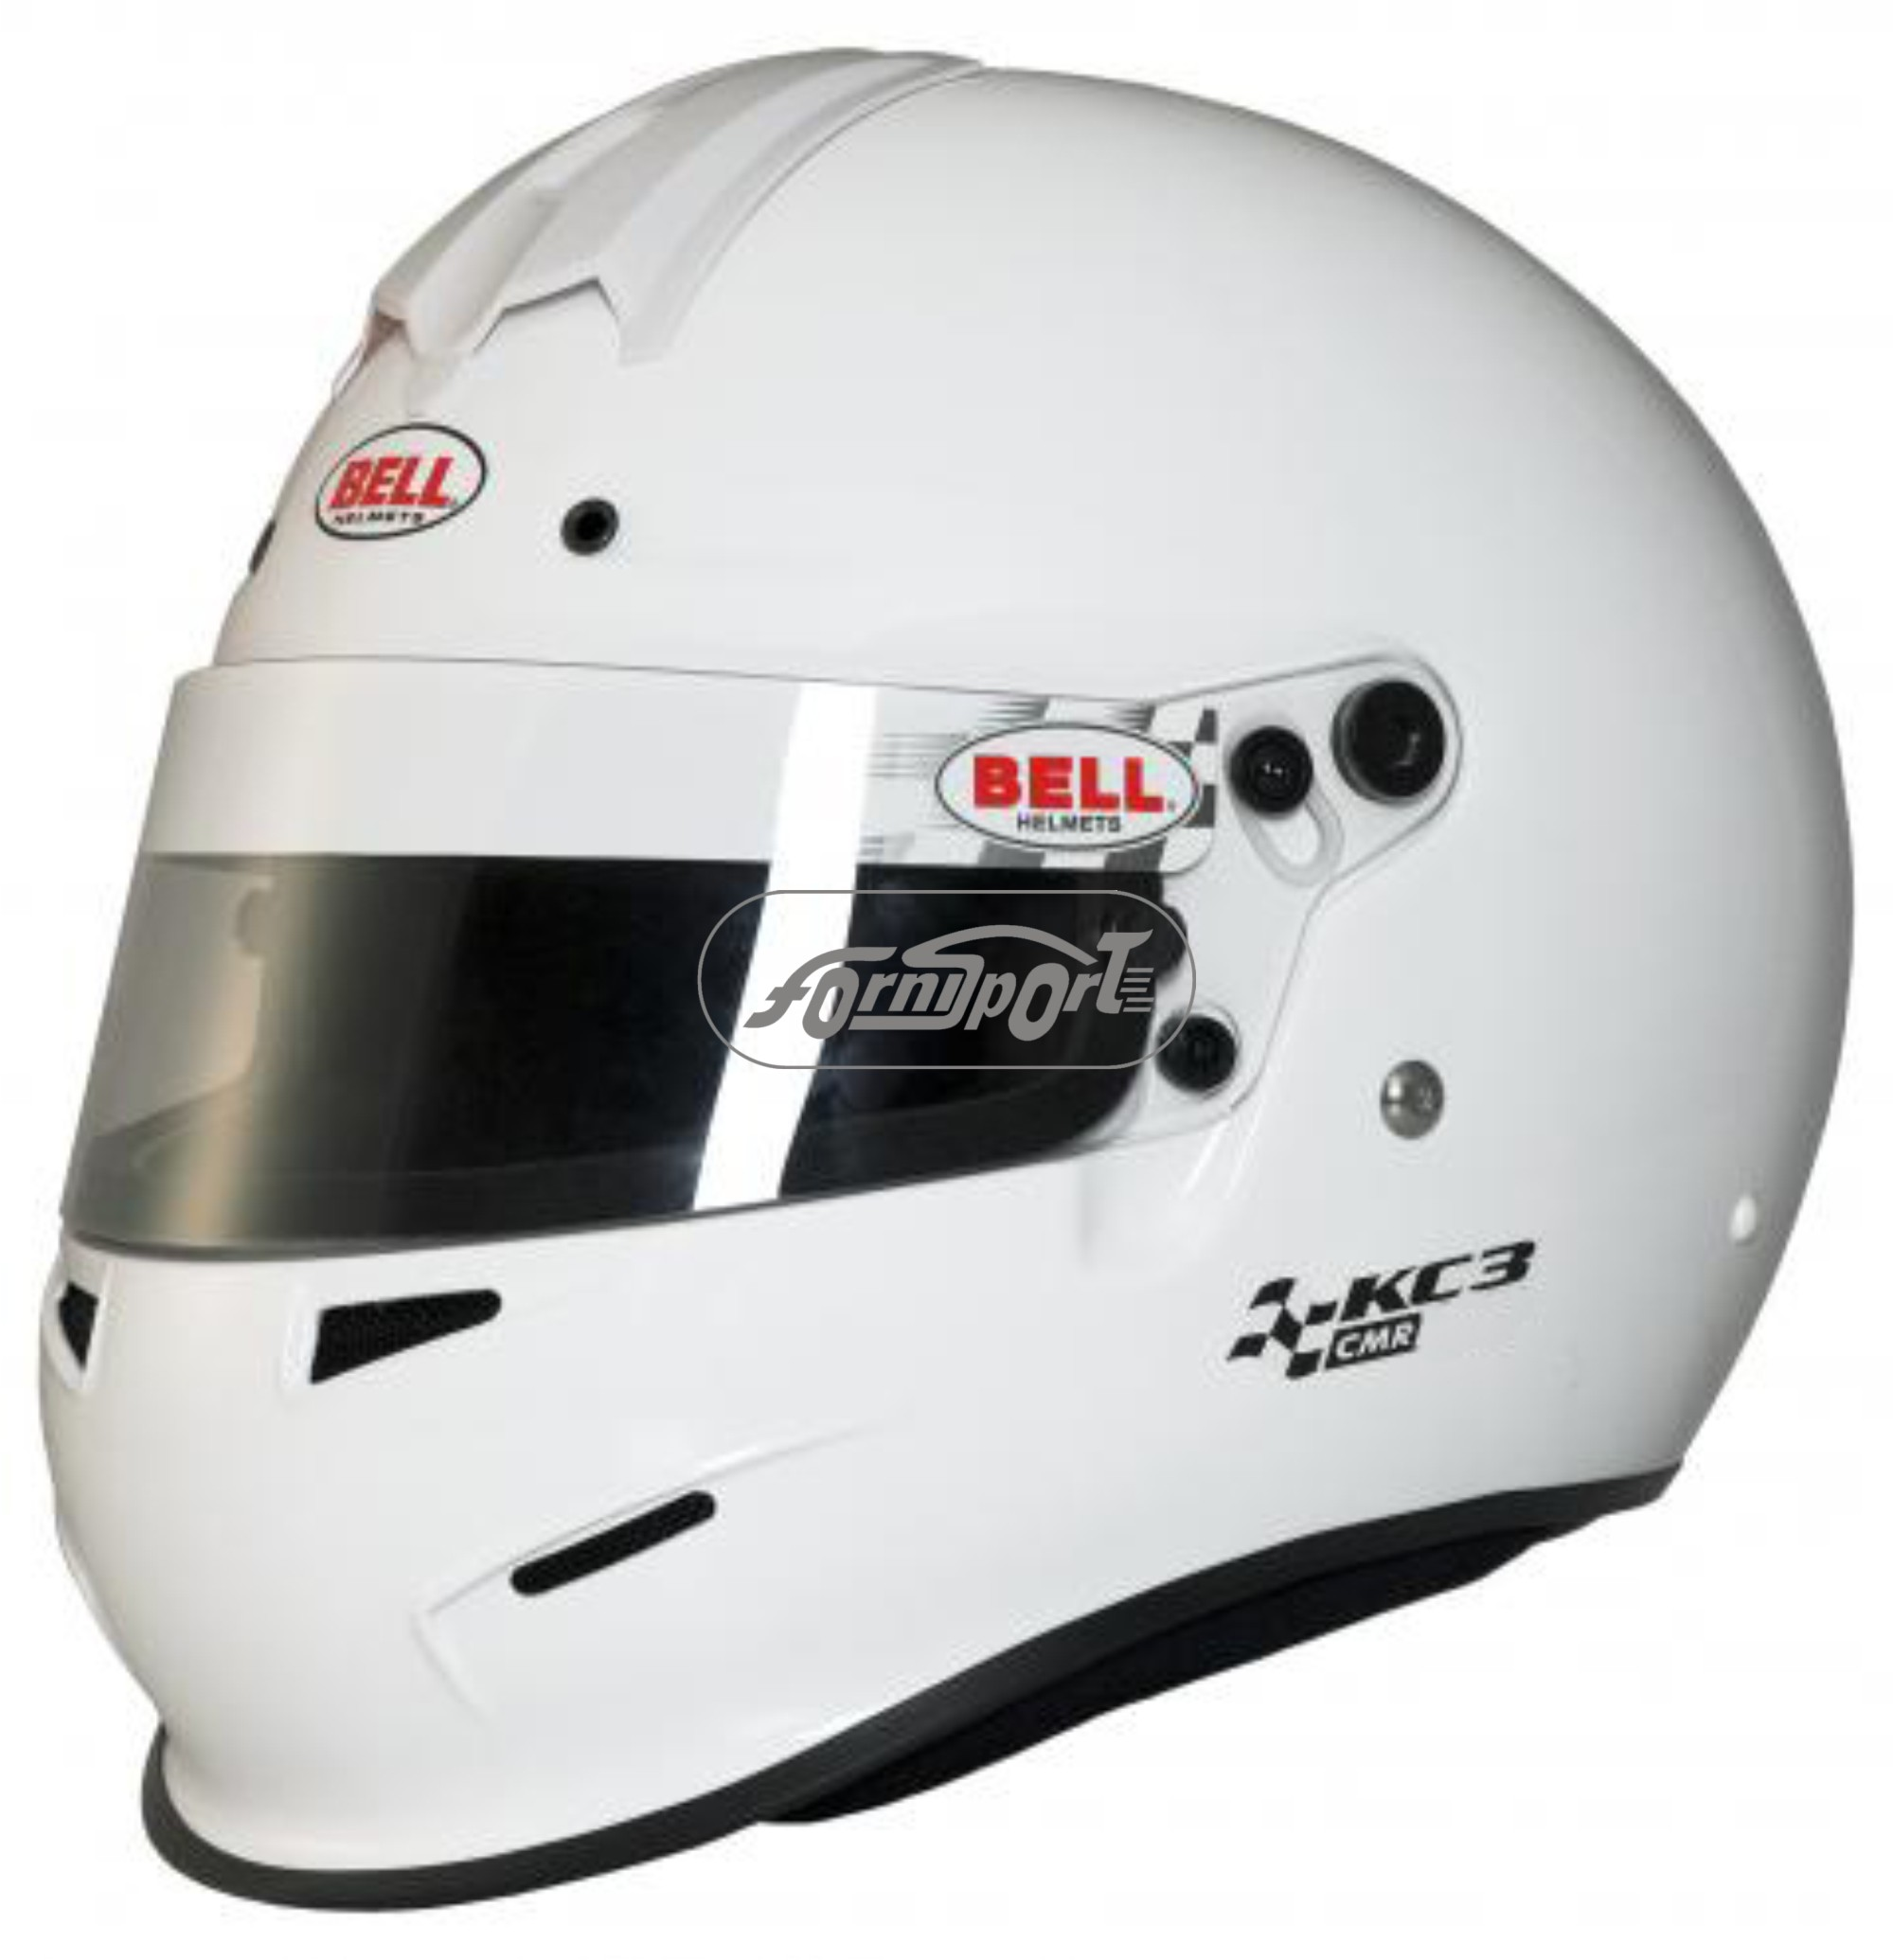 Casco FIA BELL Integral Hom KC3 T58